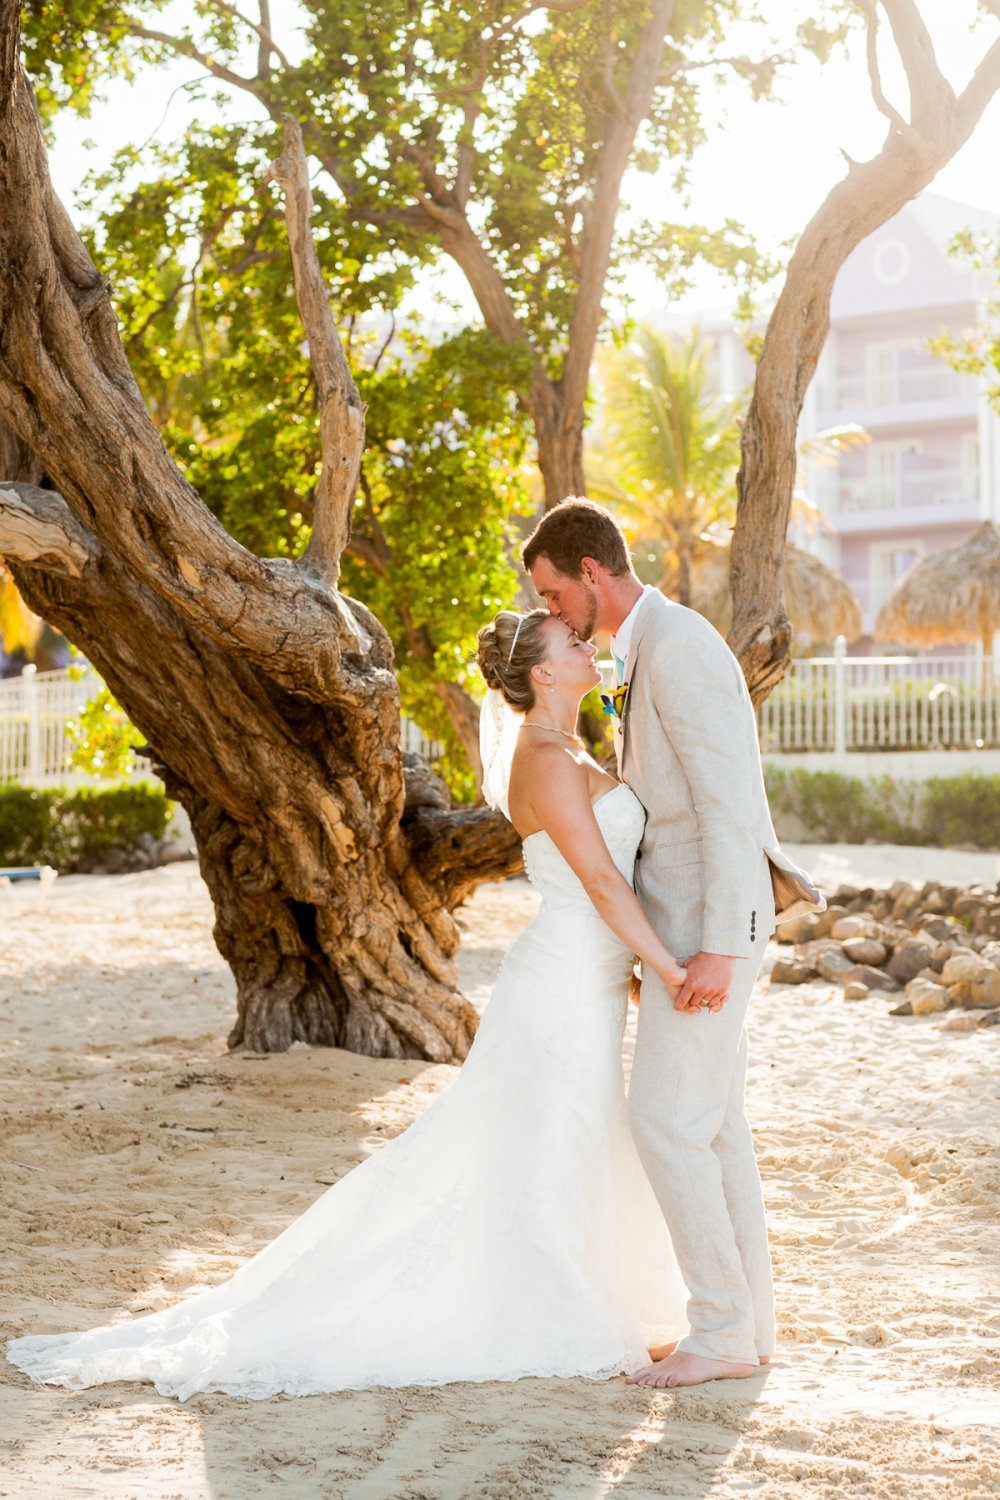 JF Hannigan Wedding Photography: Kat and Dan: a jamaican getaway 24